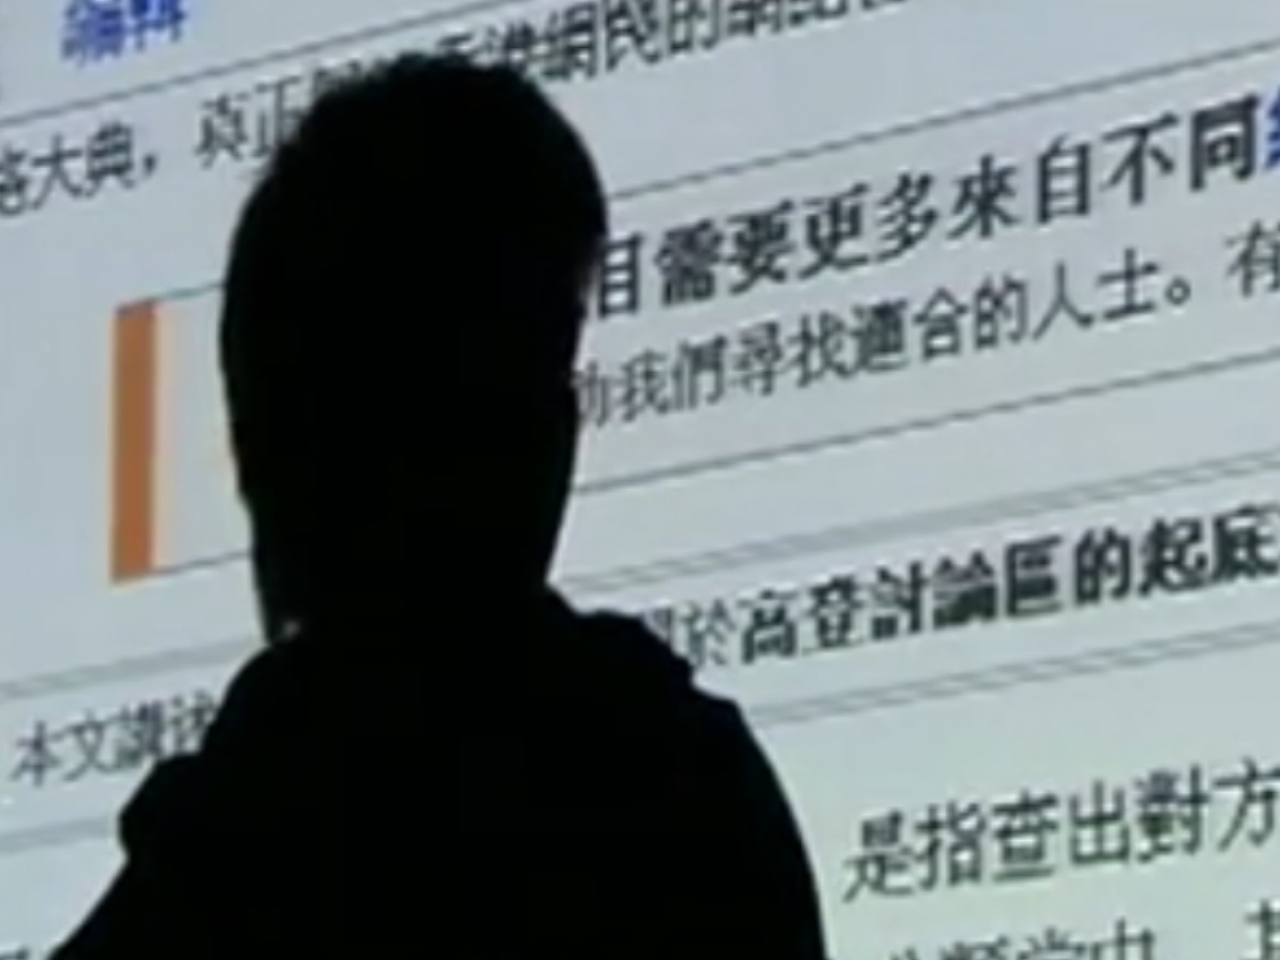 The government says existing privacy laws do not address recent doxxing cases. File photo: RTHK